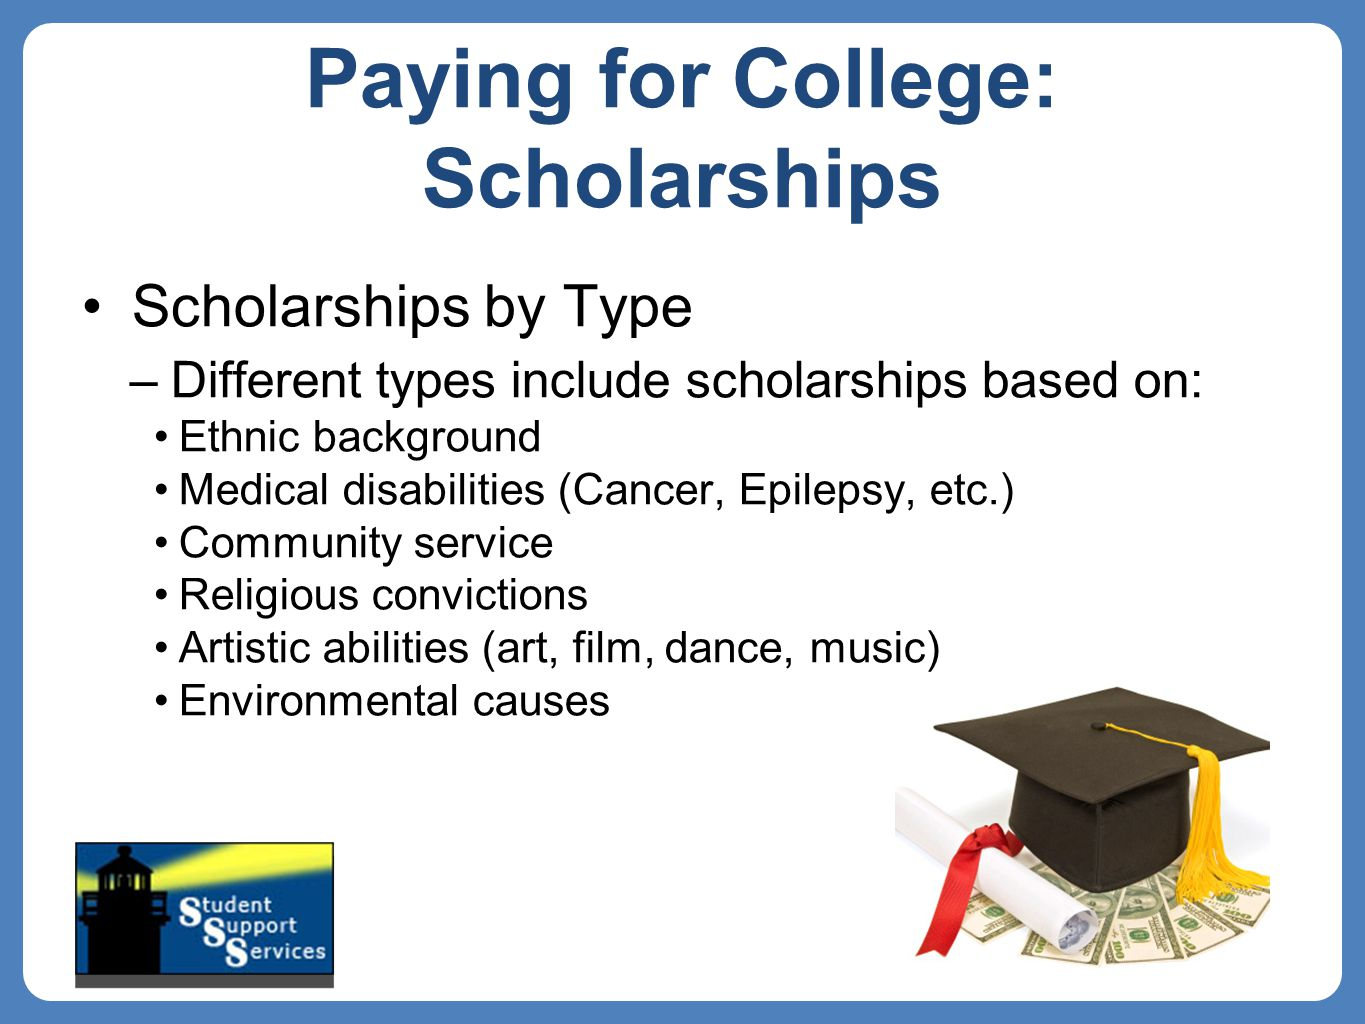 Paying for College: Scholarships Scholarships by Type –Different types include scholarships based on: Ethnic background Medical disabilities (Cancer, Epilepsy, etc.) Community service Religious convictions Artistic abilities (art, film, dance, music) Environmental causes